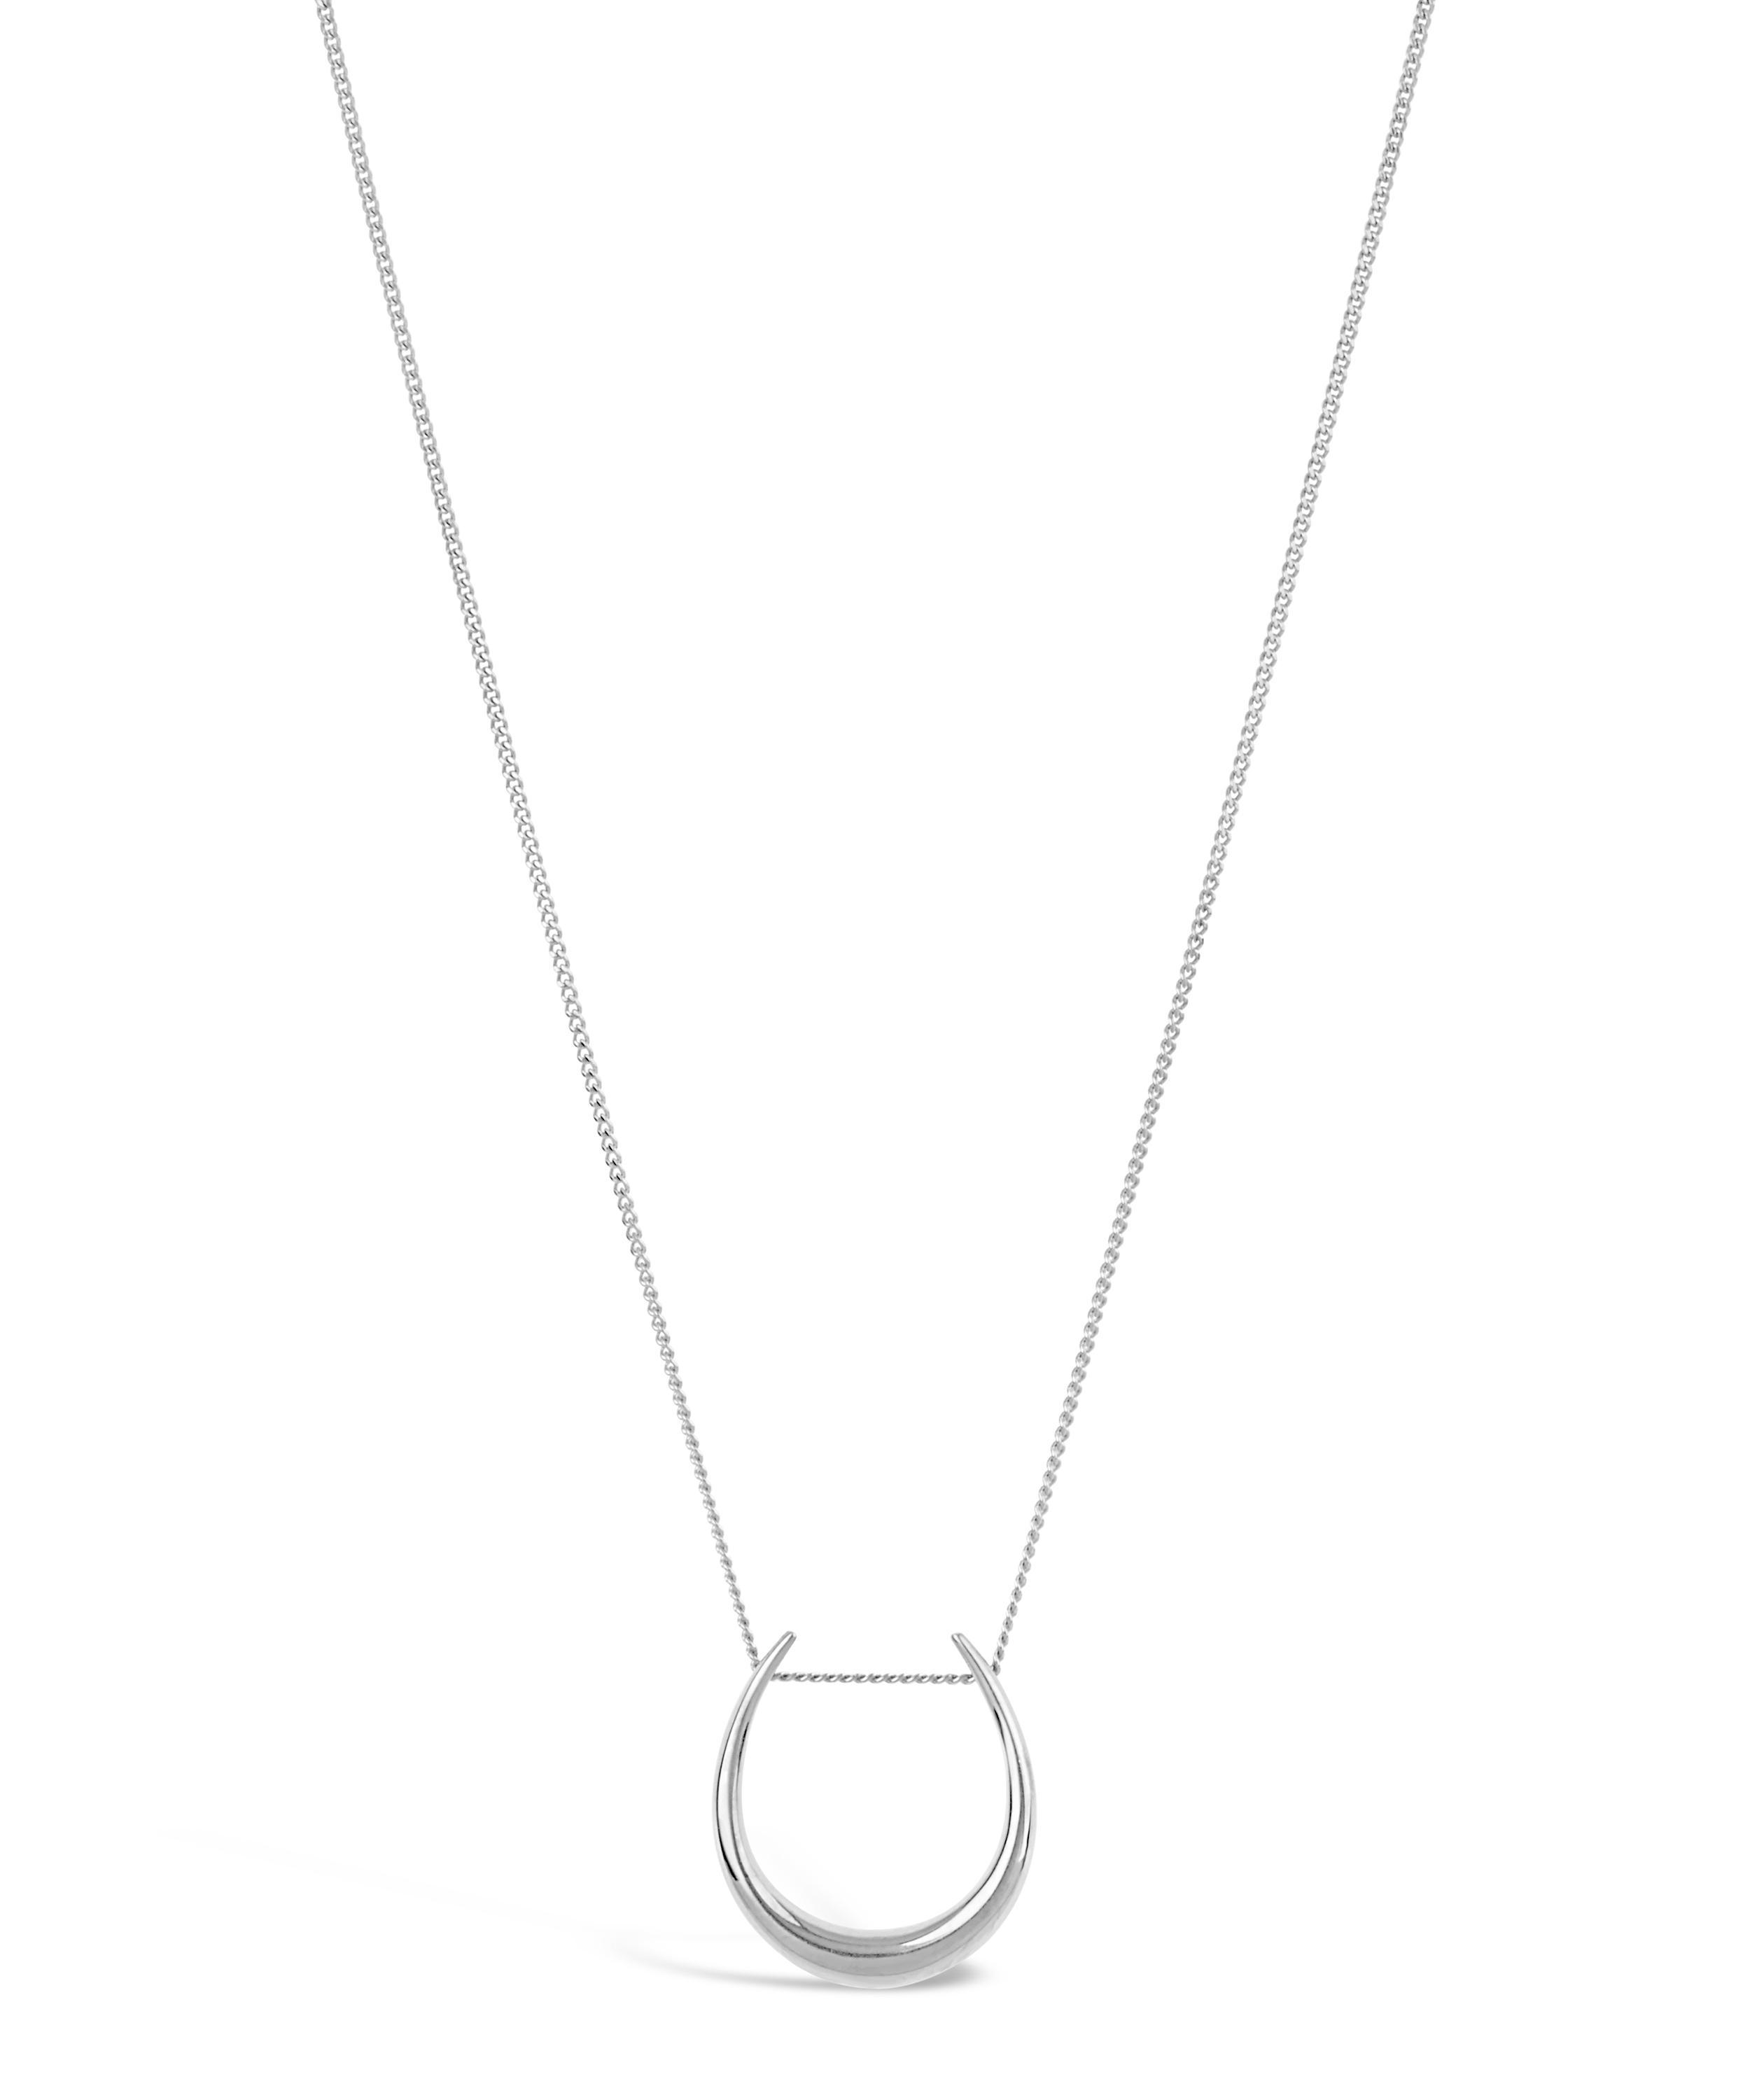 cutout sutton smithworks necklace slider oval dsc products